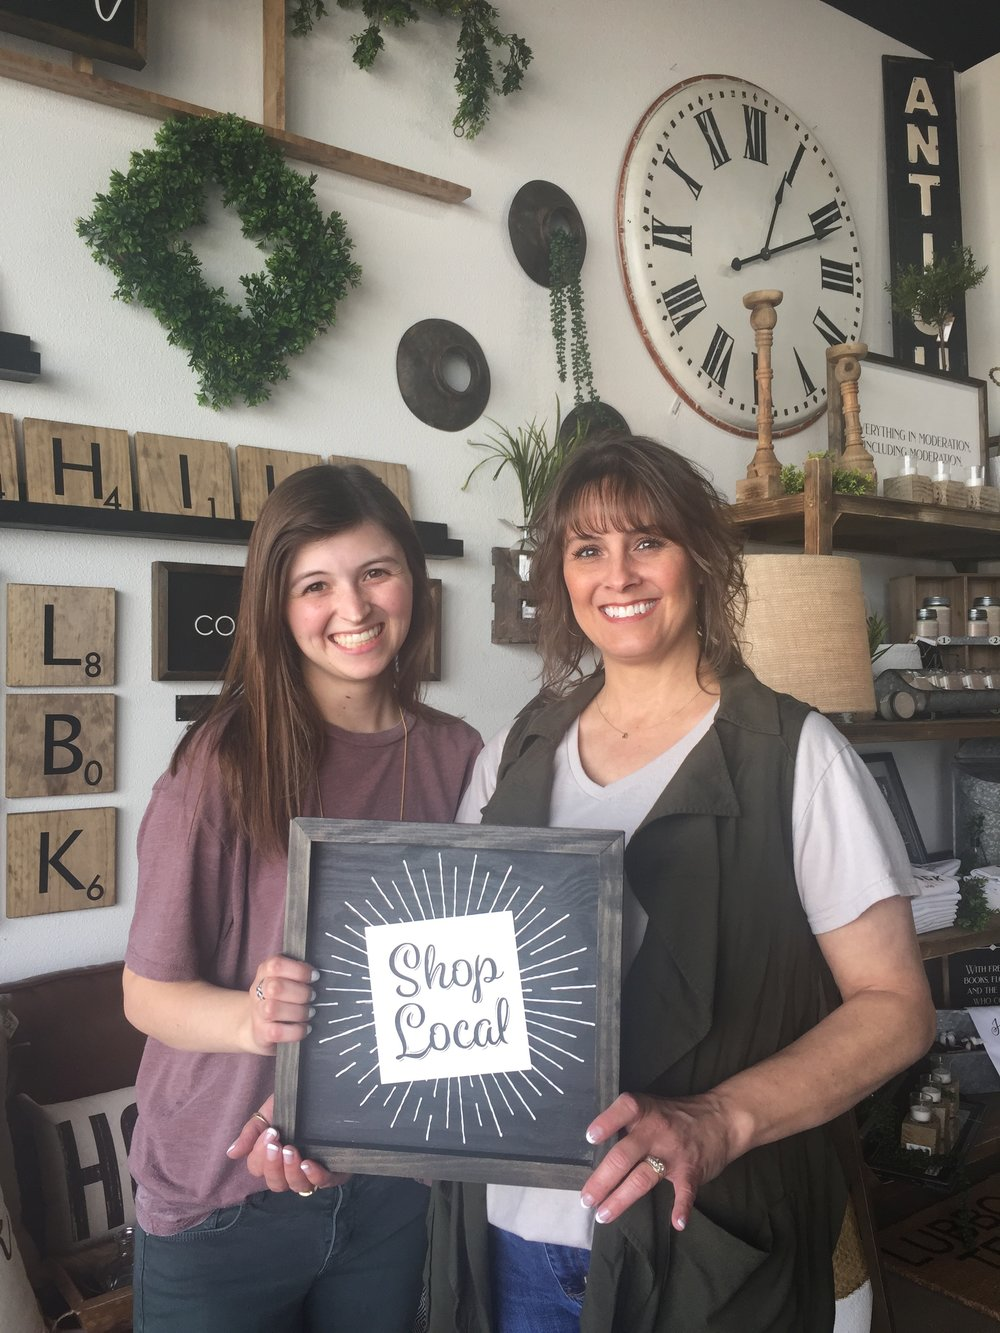 What local and independent means to Kenzie - Our favorite part about being a Lubbock business is growing our relationships with our customers! It's so awesome to see people coming back time after time! It's exciting to see their houses become homes (as cheesy as that sounds, it's true)! Especially when you see the products we've handpicked become part of their stories!